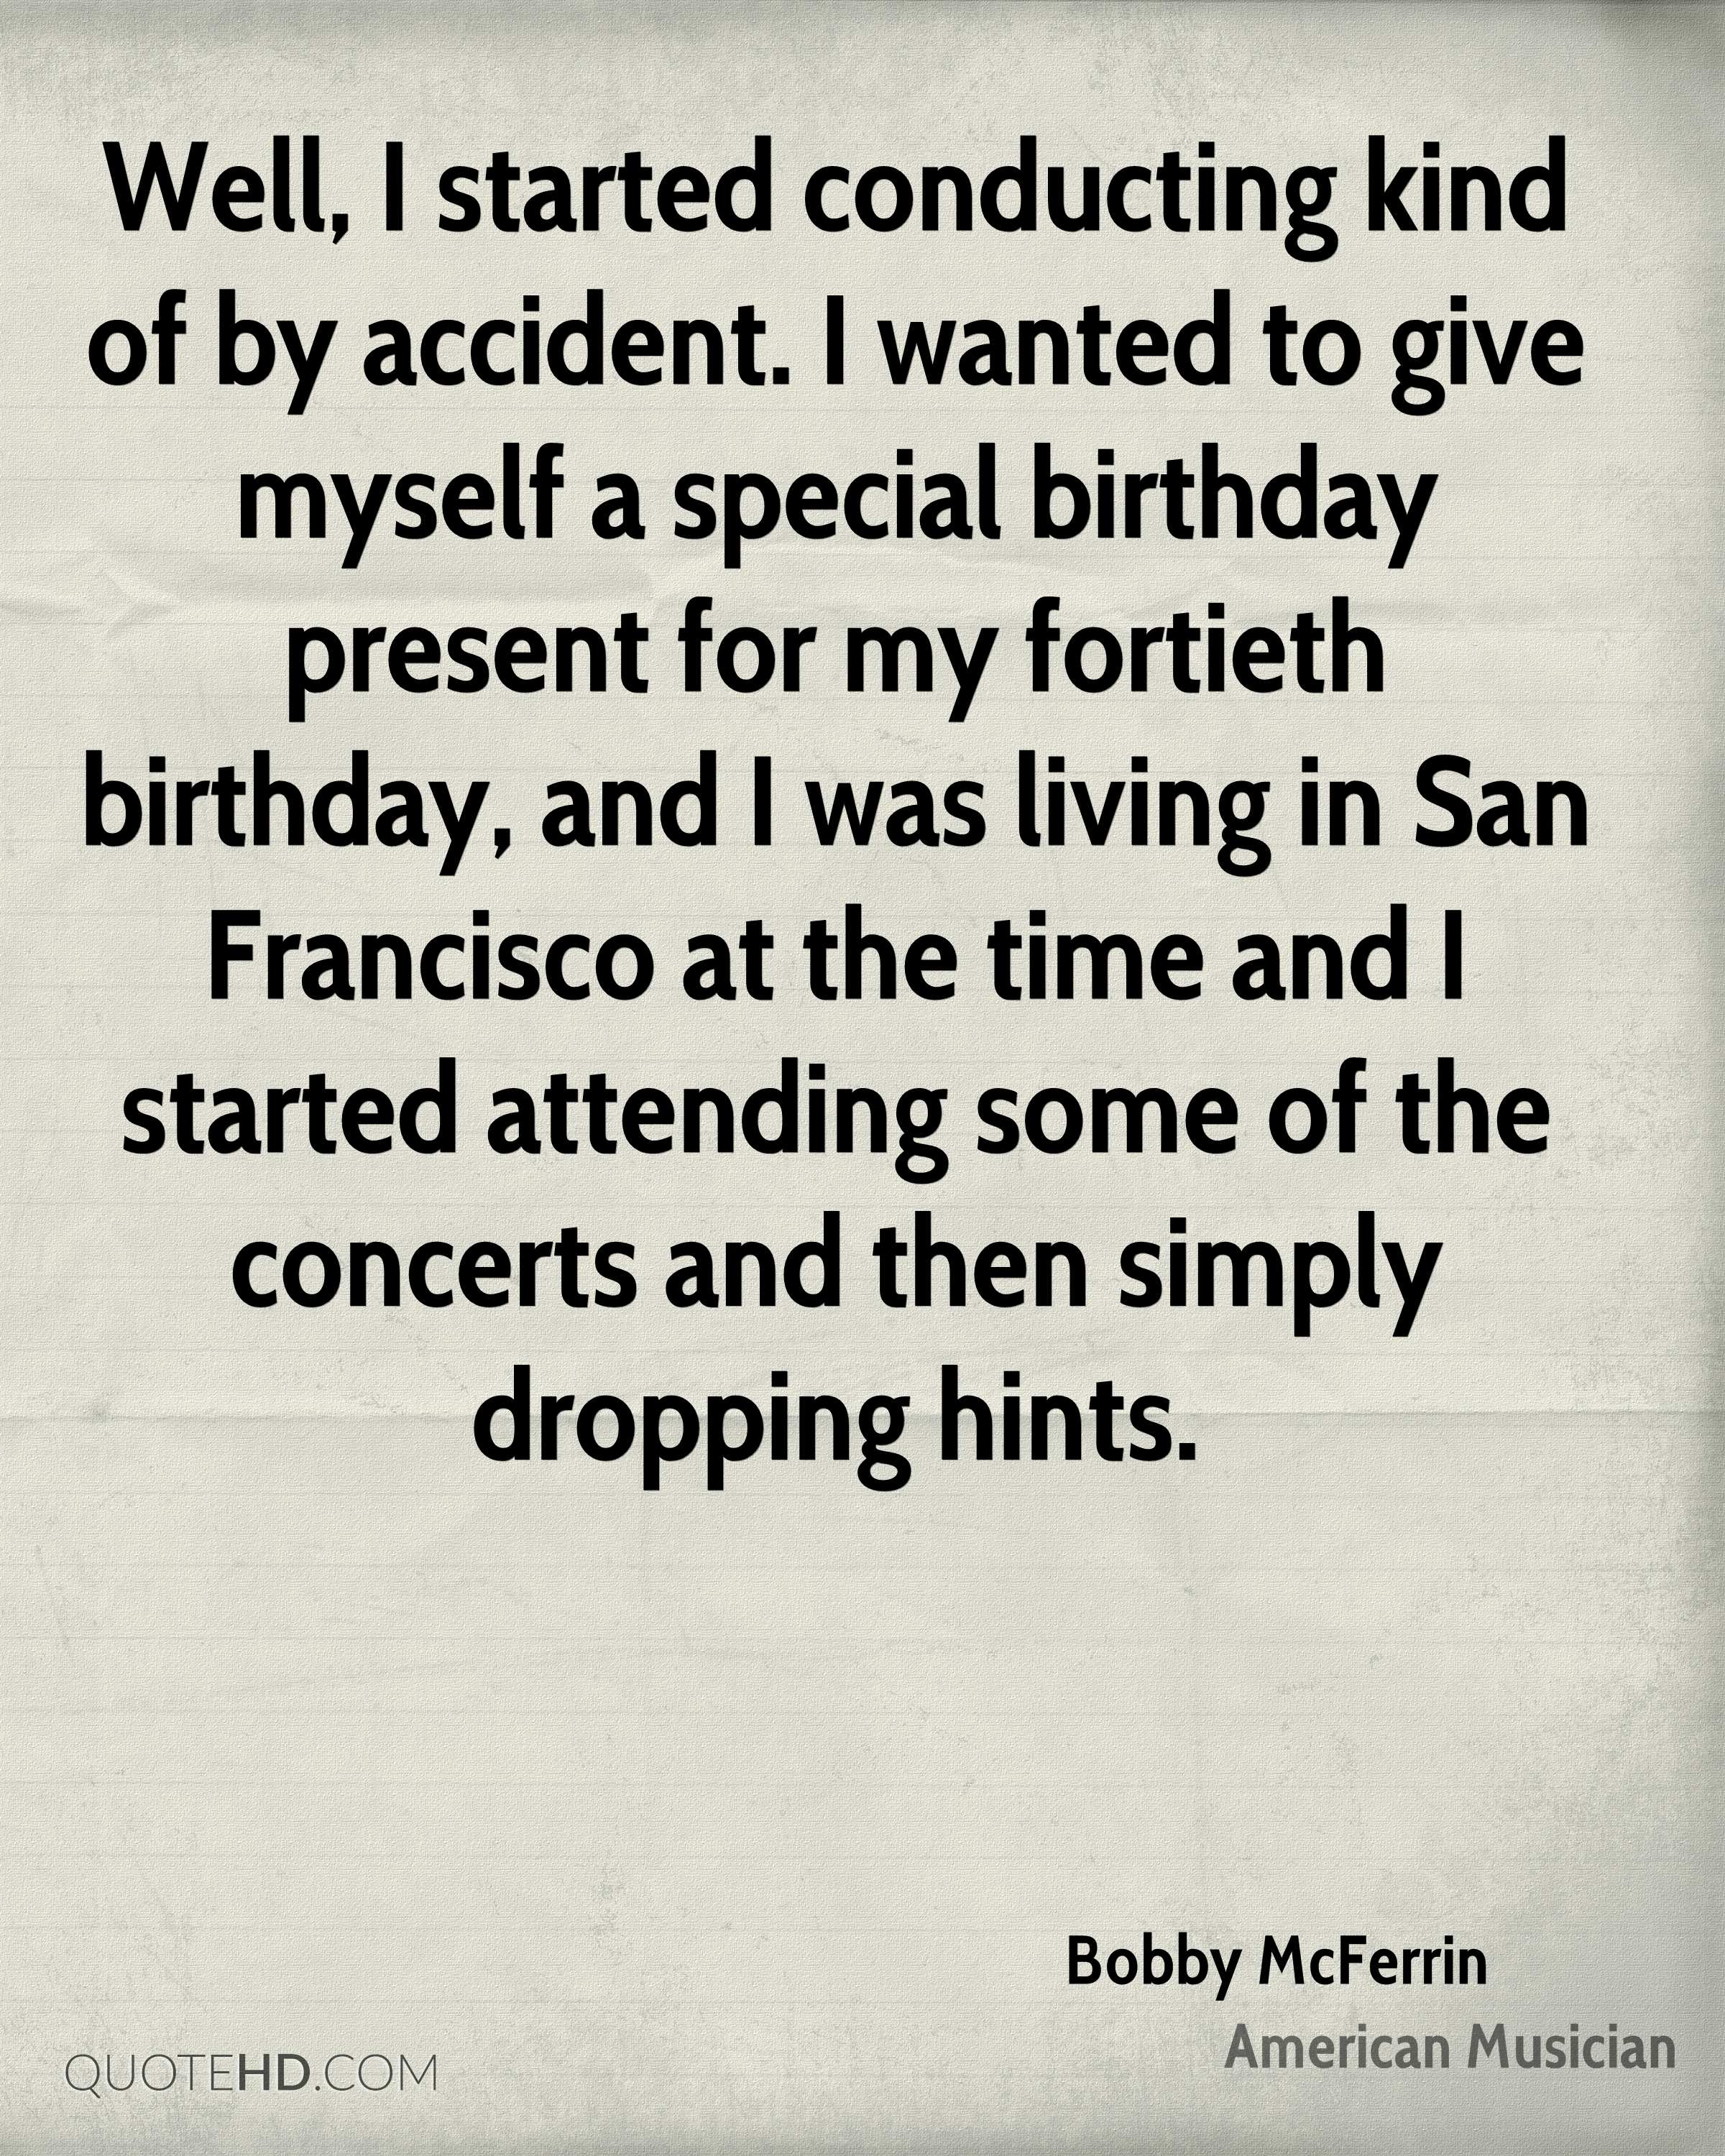 Well, I started conducting kind of by accident. I wanted to give myself a special birthday present for my fortieth birthday, and I was living in San Francisco at the time and I started attending some of the concerts and then simply dropping hints.